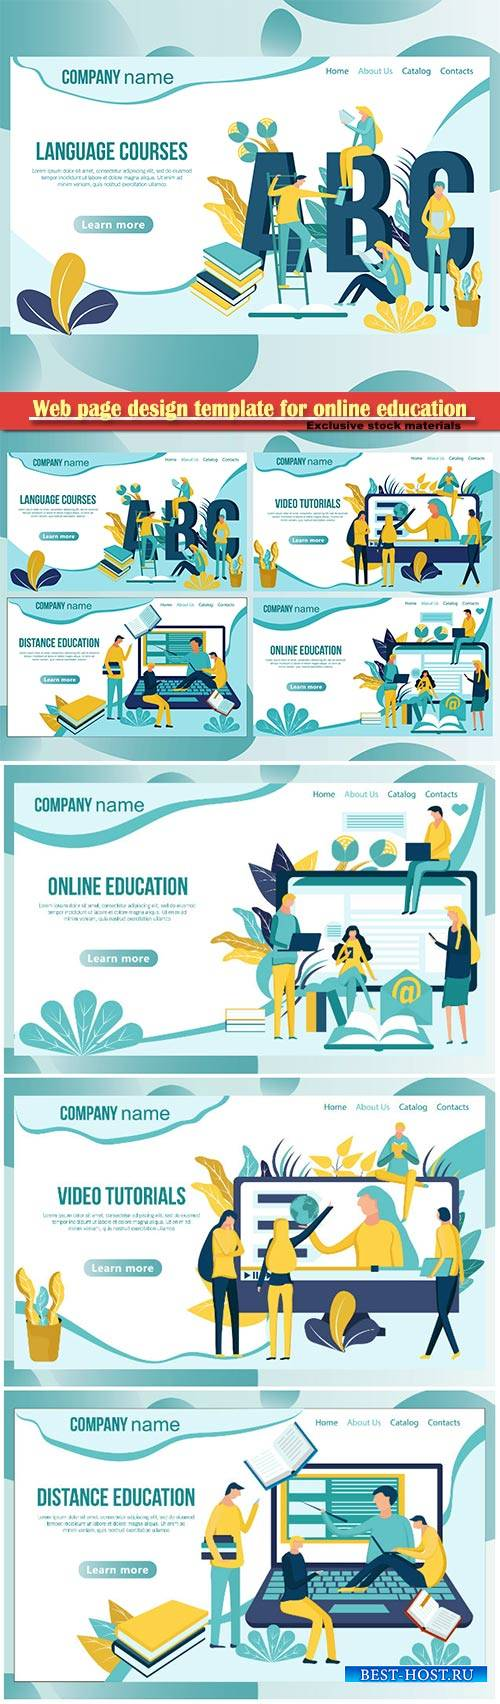 Web page design template for online education vector illustration